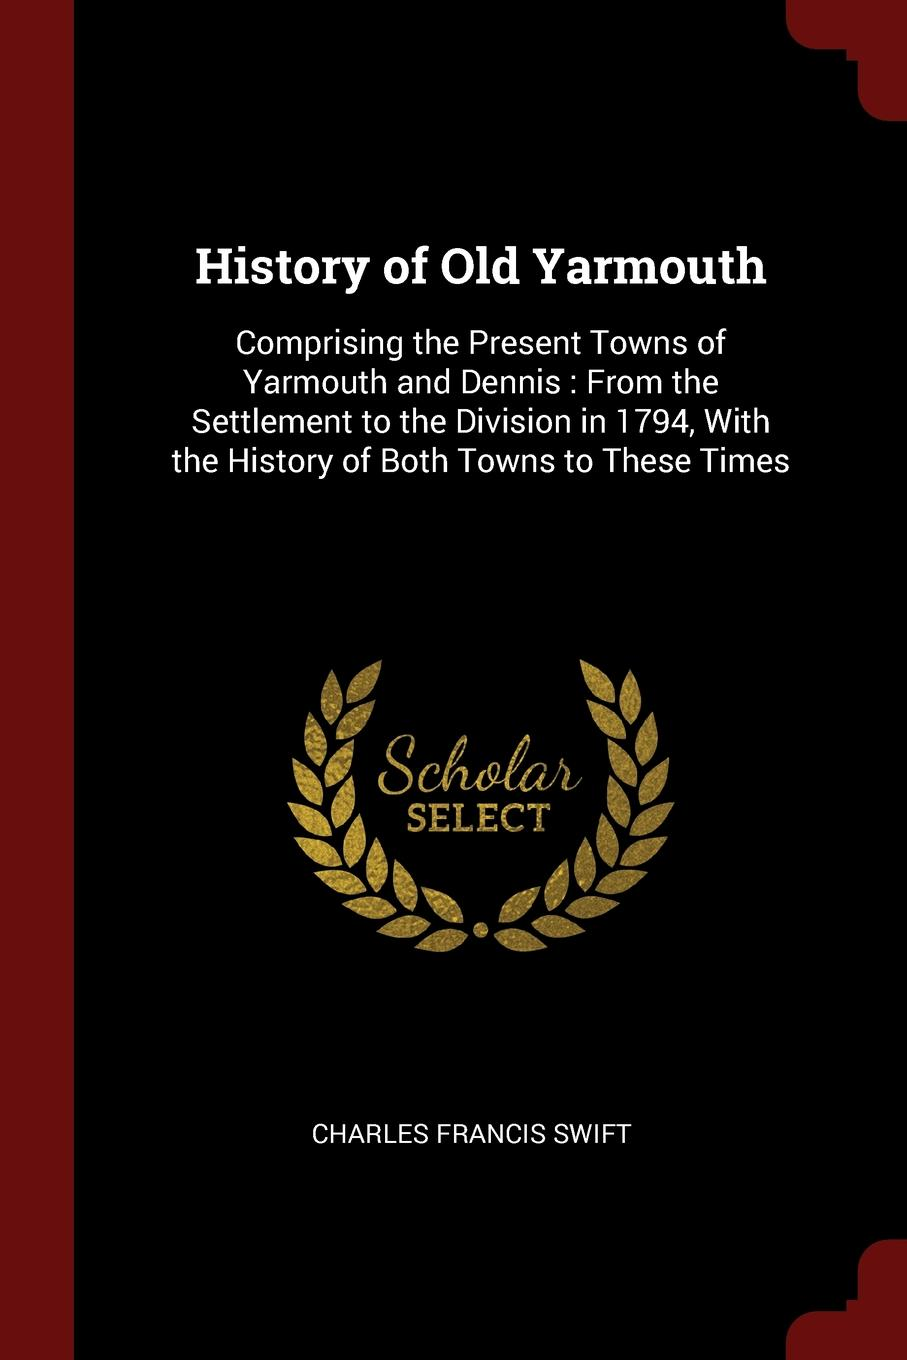 Charles Francis Swift History of Old Yarmouth. Comprising the Present Towns of Yarmouth and Dennis : From the Settlement to the Division in 1794, With the History of Both Towns to These Times charles richard tuttle the centennial northwest an illustrated history of the northwest being a full and complete civil political and military history of this great section of the united states from its earliest settlement to the present time